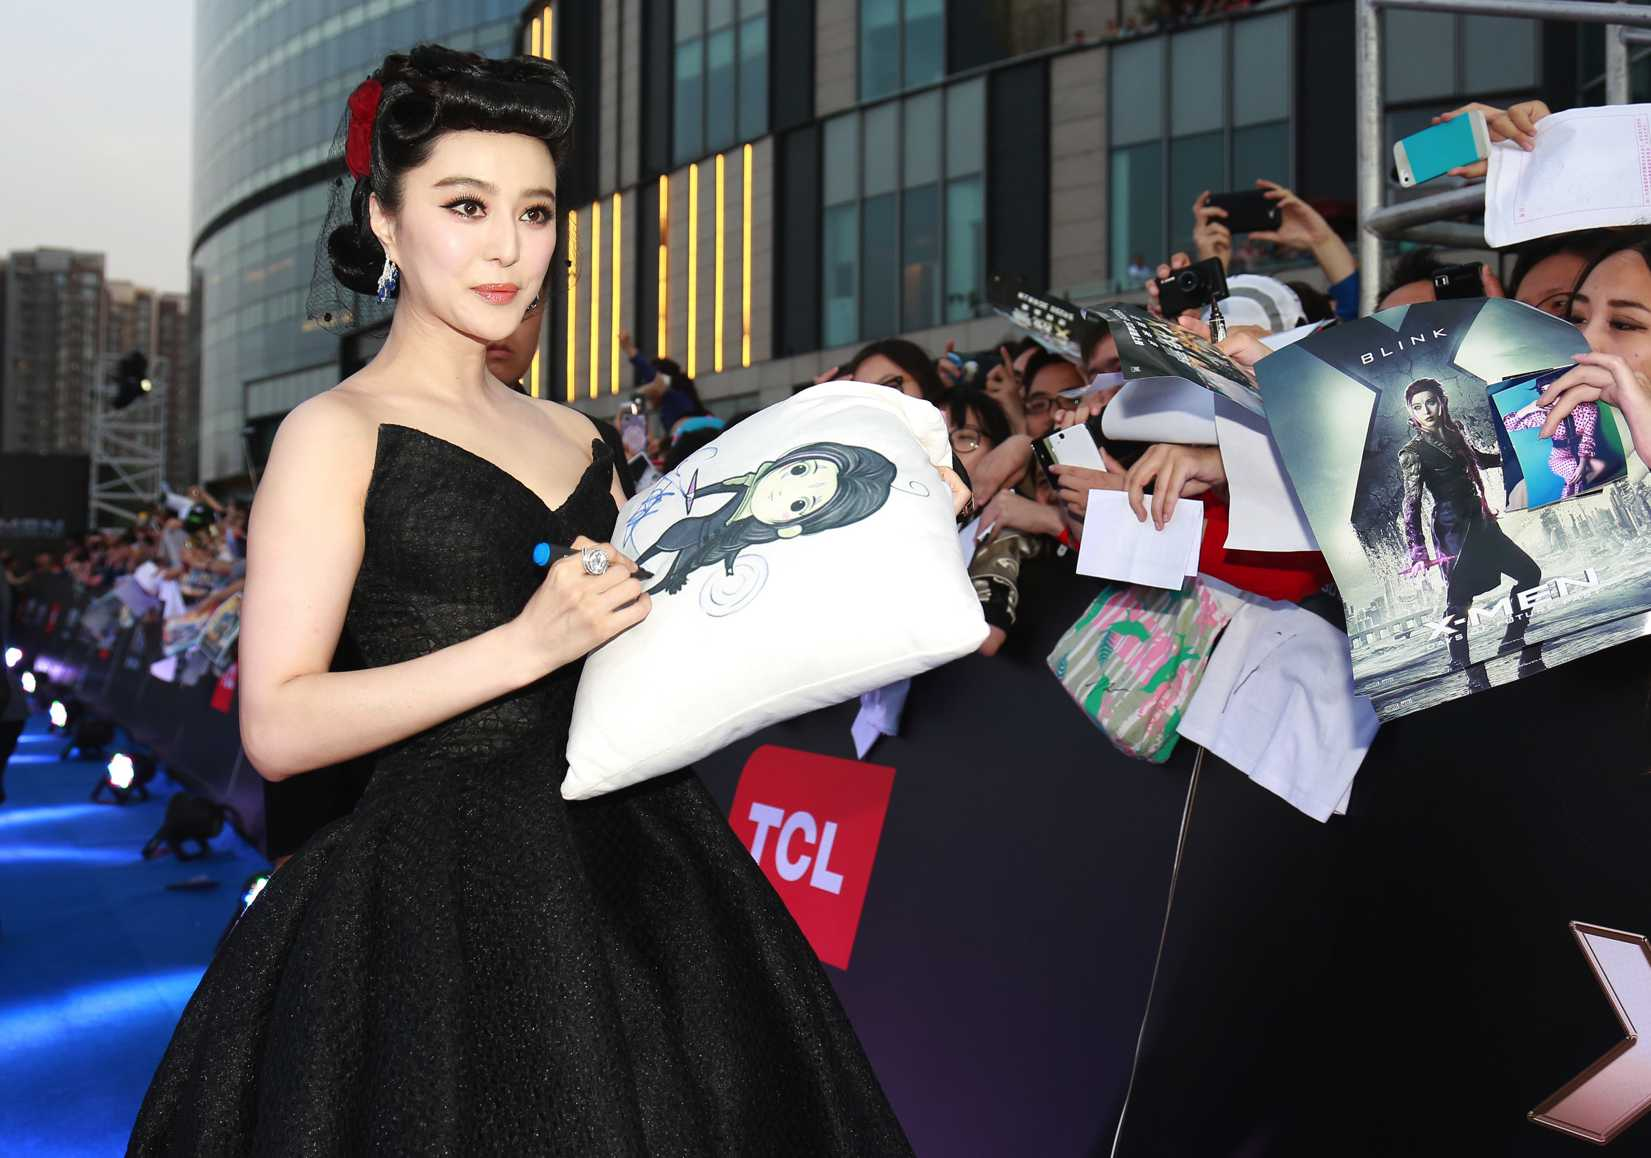 Chinese actress Fan Bingbing signs autographs for fans as she arrives at the premiere for her new movie, X-Men: Days of Future Past, in Beijing, China, 13 May 2014.